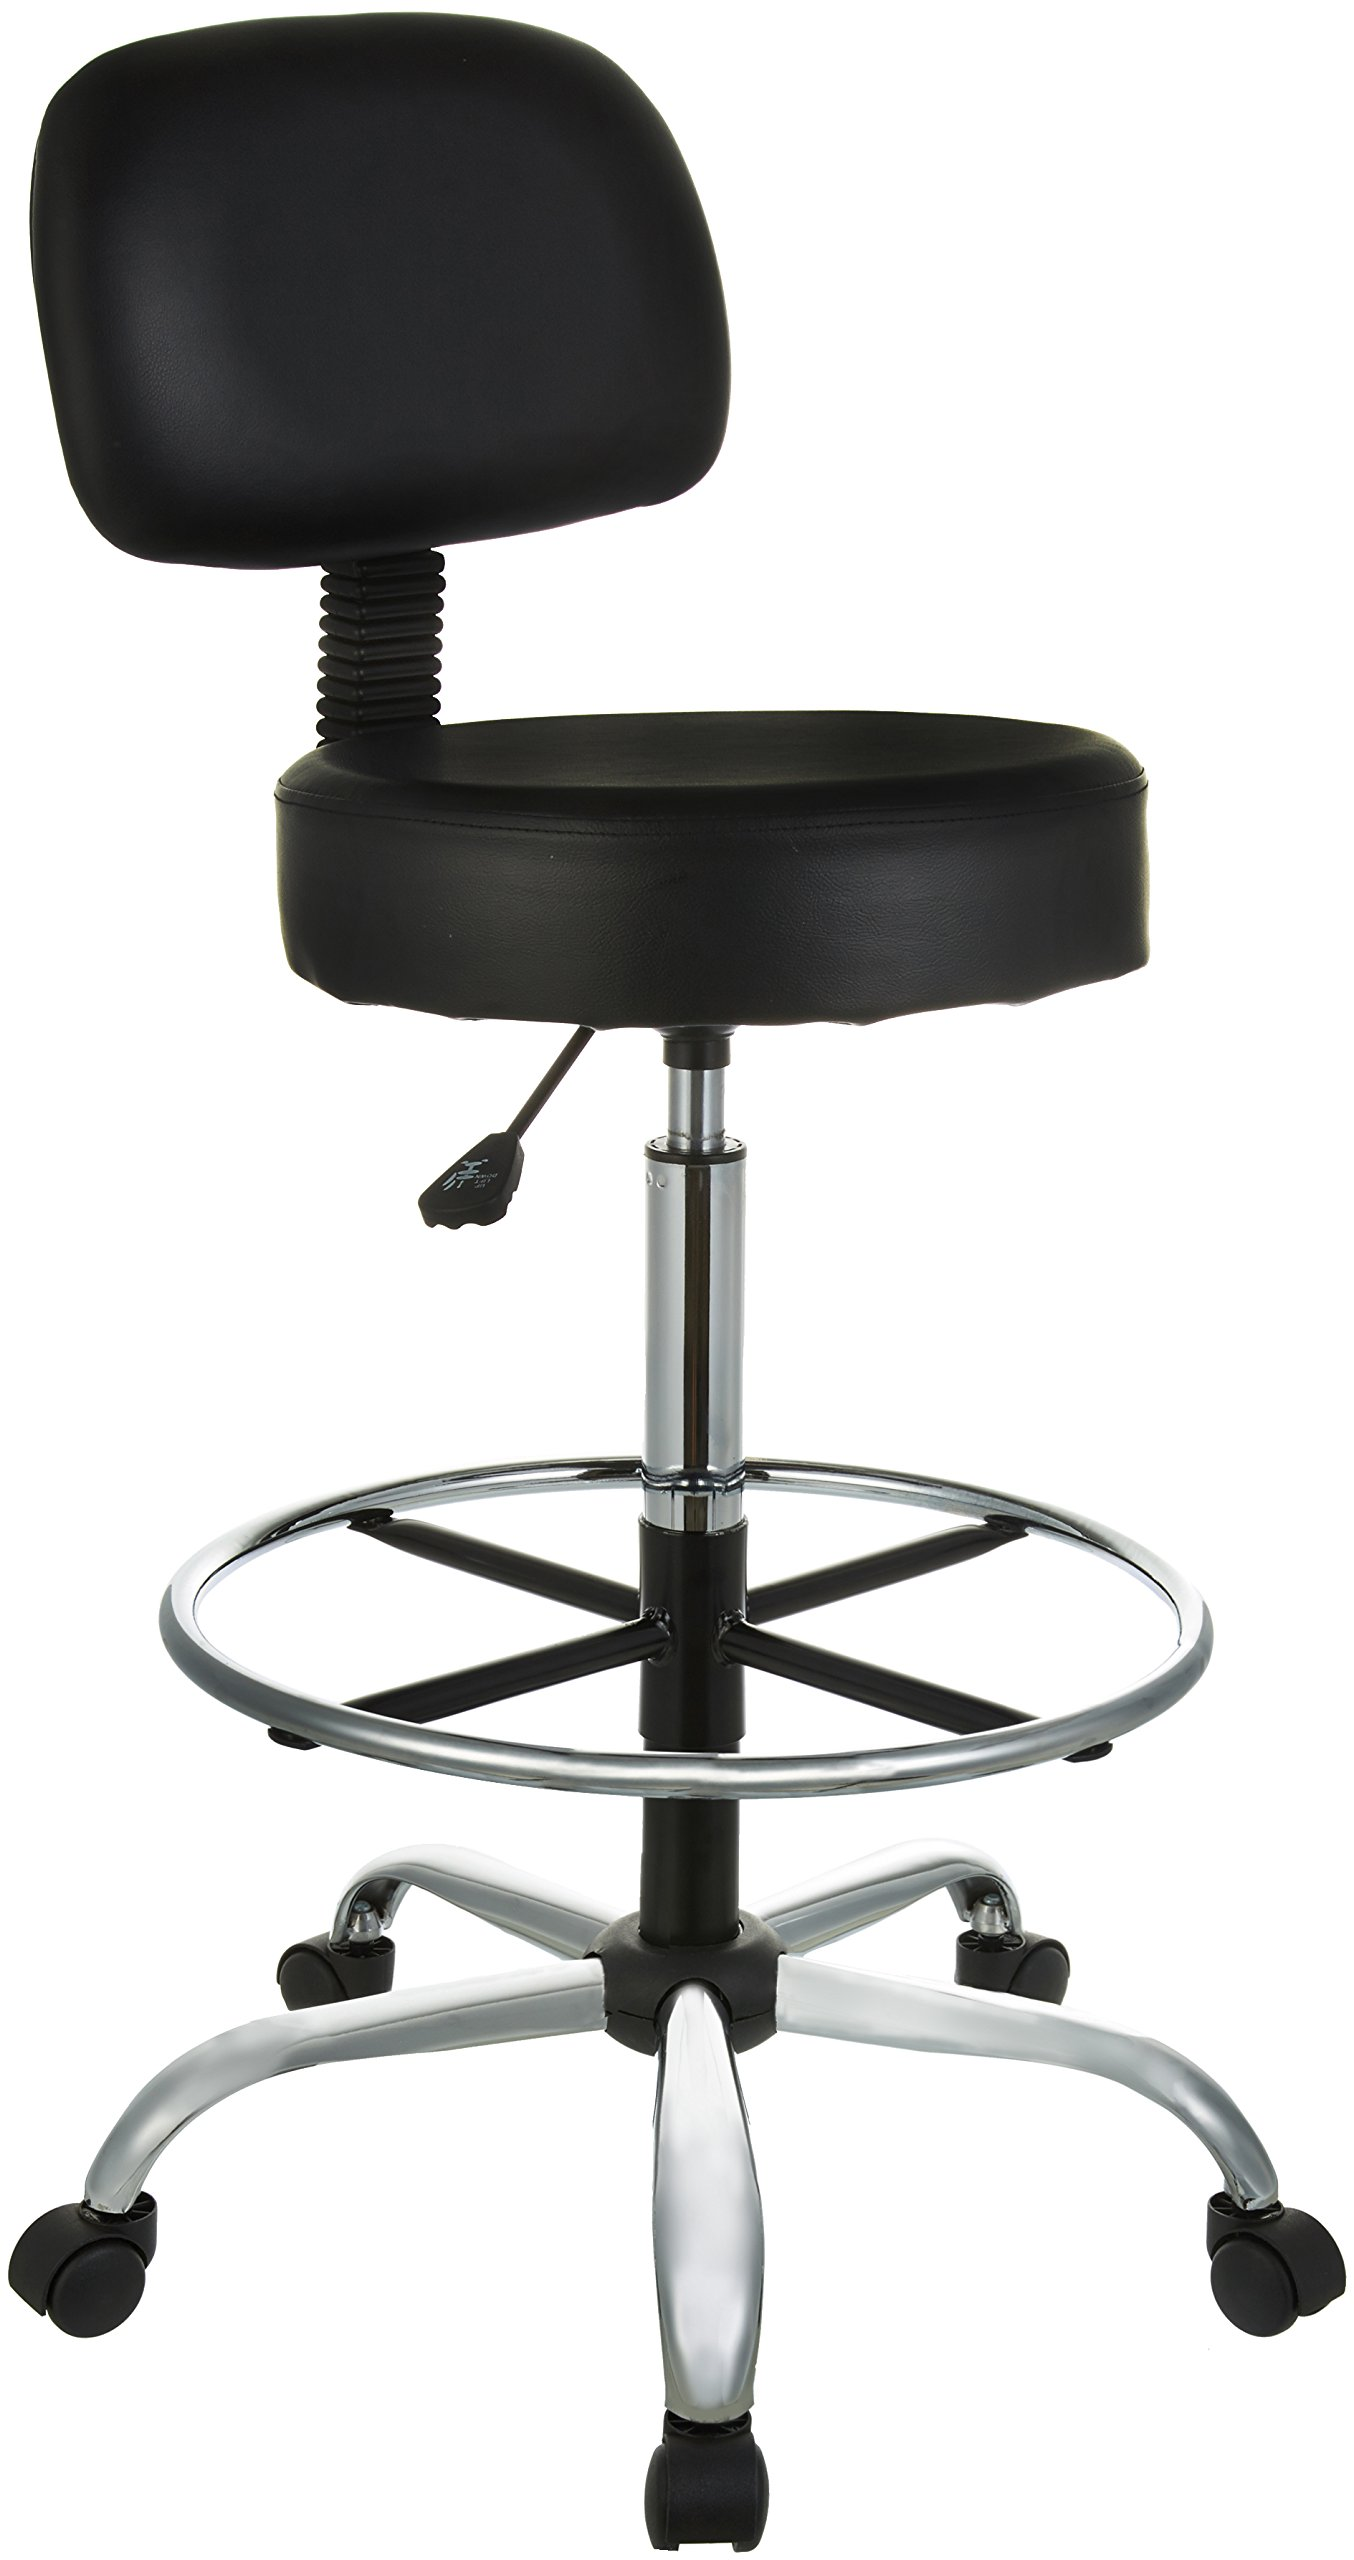 AmazonBasics Drafting Stool with Adjustable Foot Rest - Black